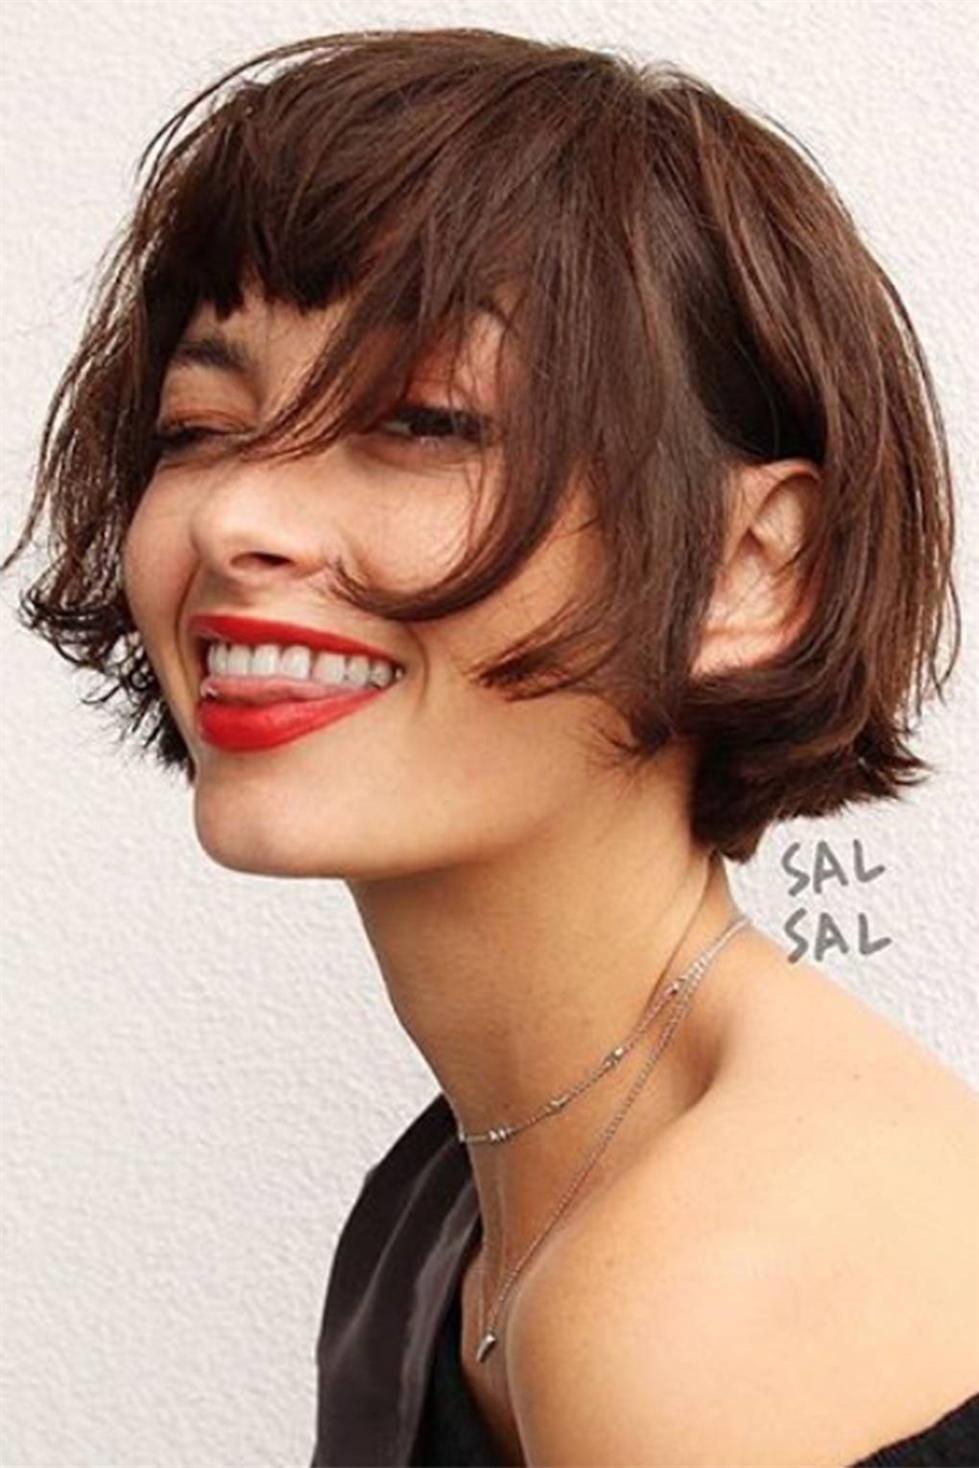 French Bob Hairstyles 2020 French Bob haircut is also highly preferred by young women today.